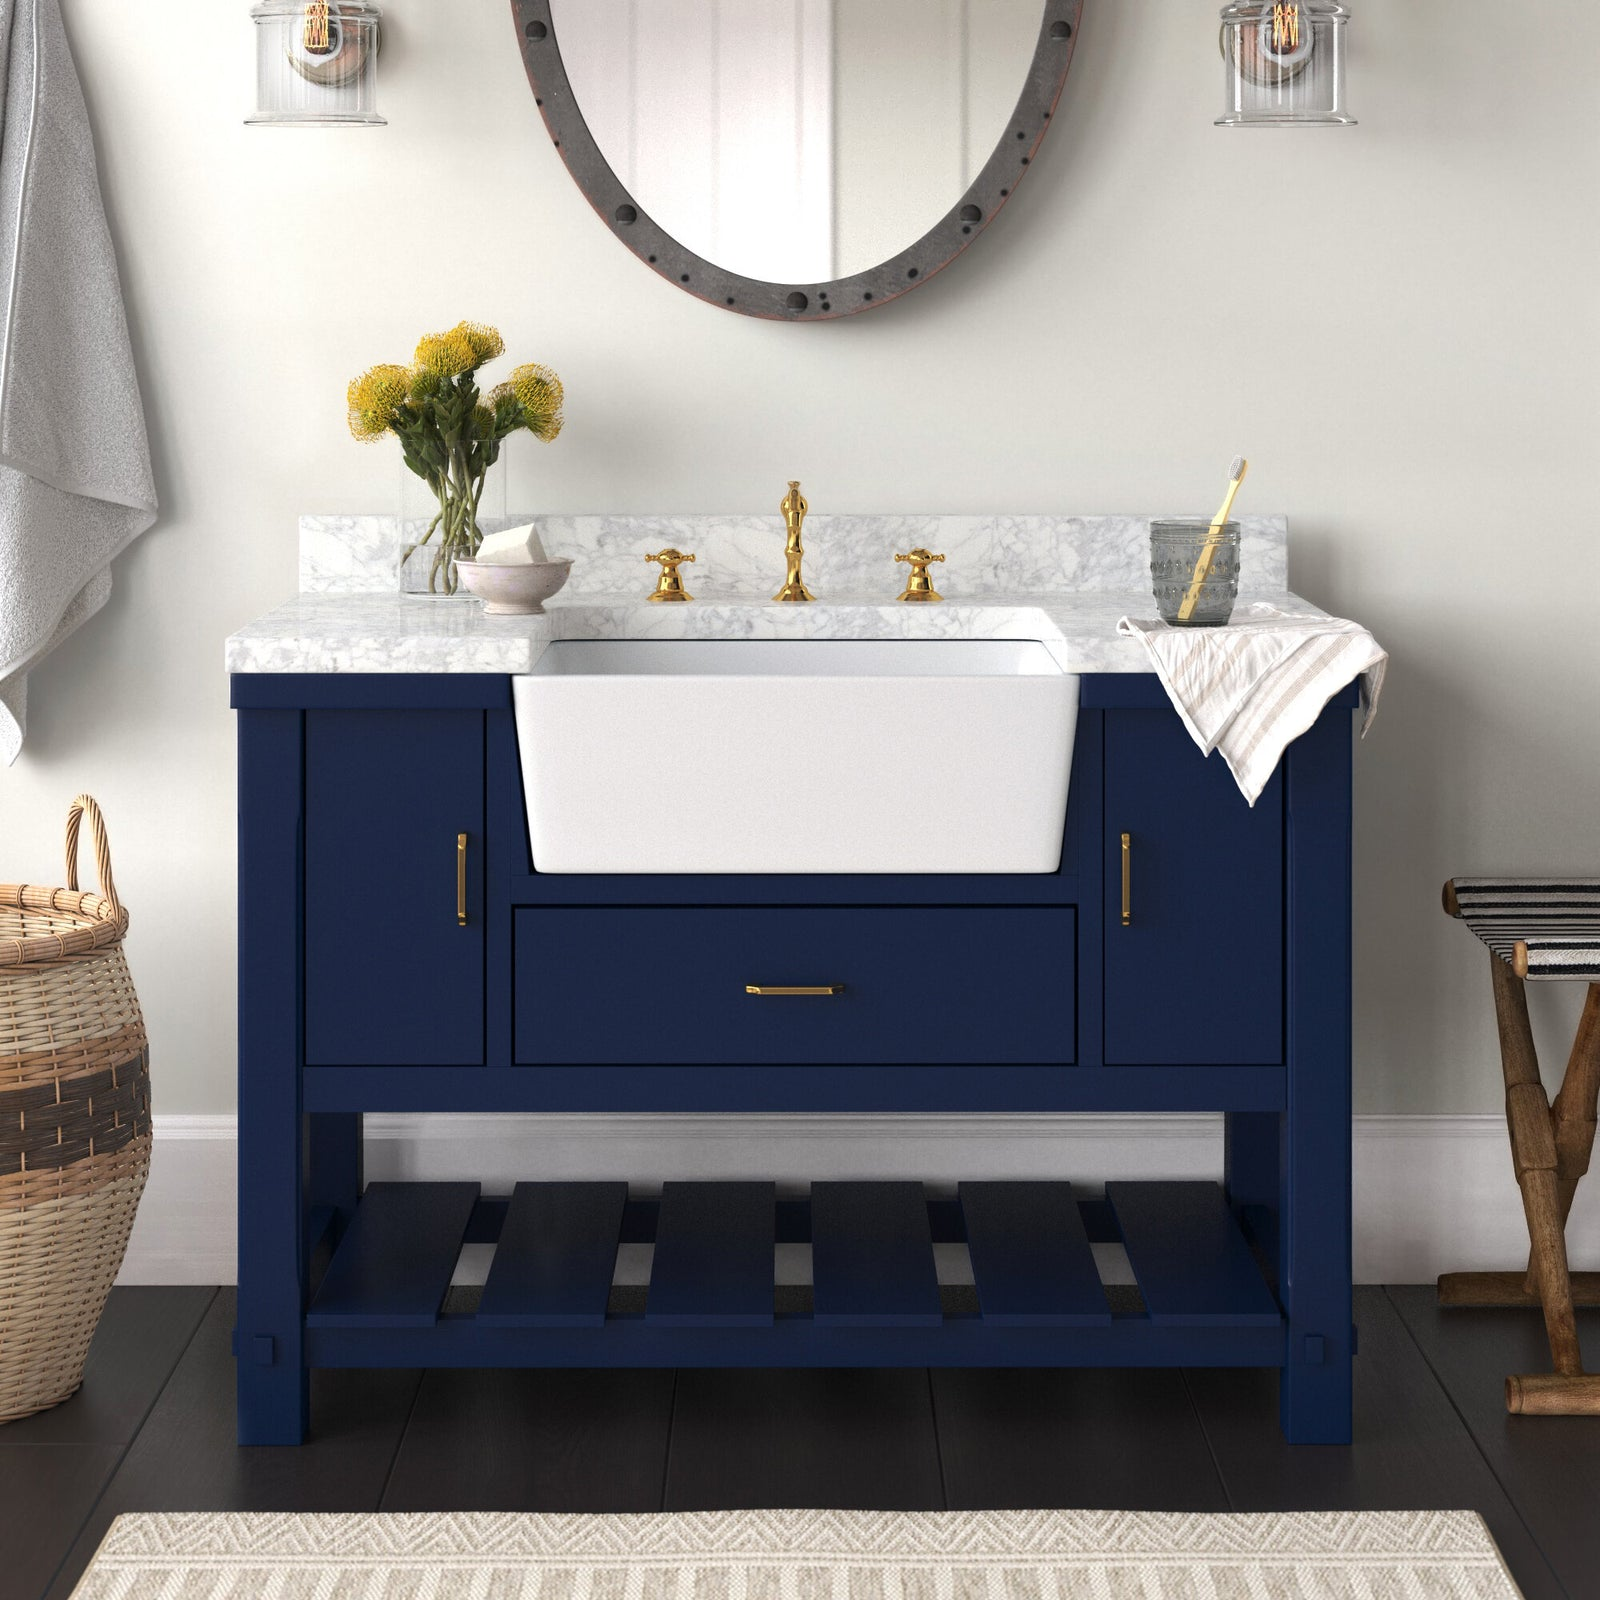 Charlotte 42-inch Royal Blue Farmhouse Bathroom Vanity Carrara Marble Top